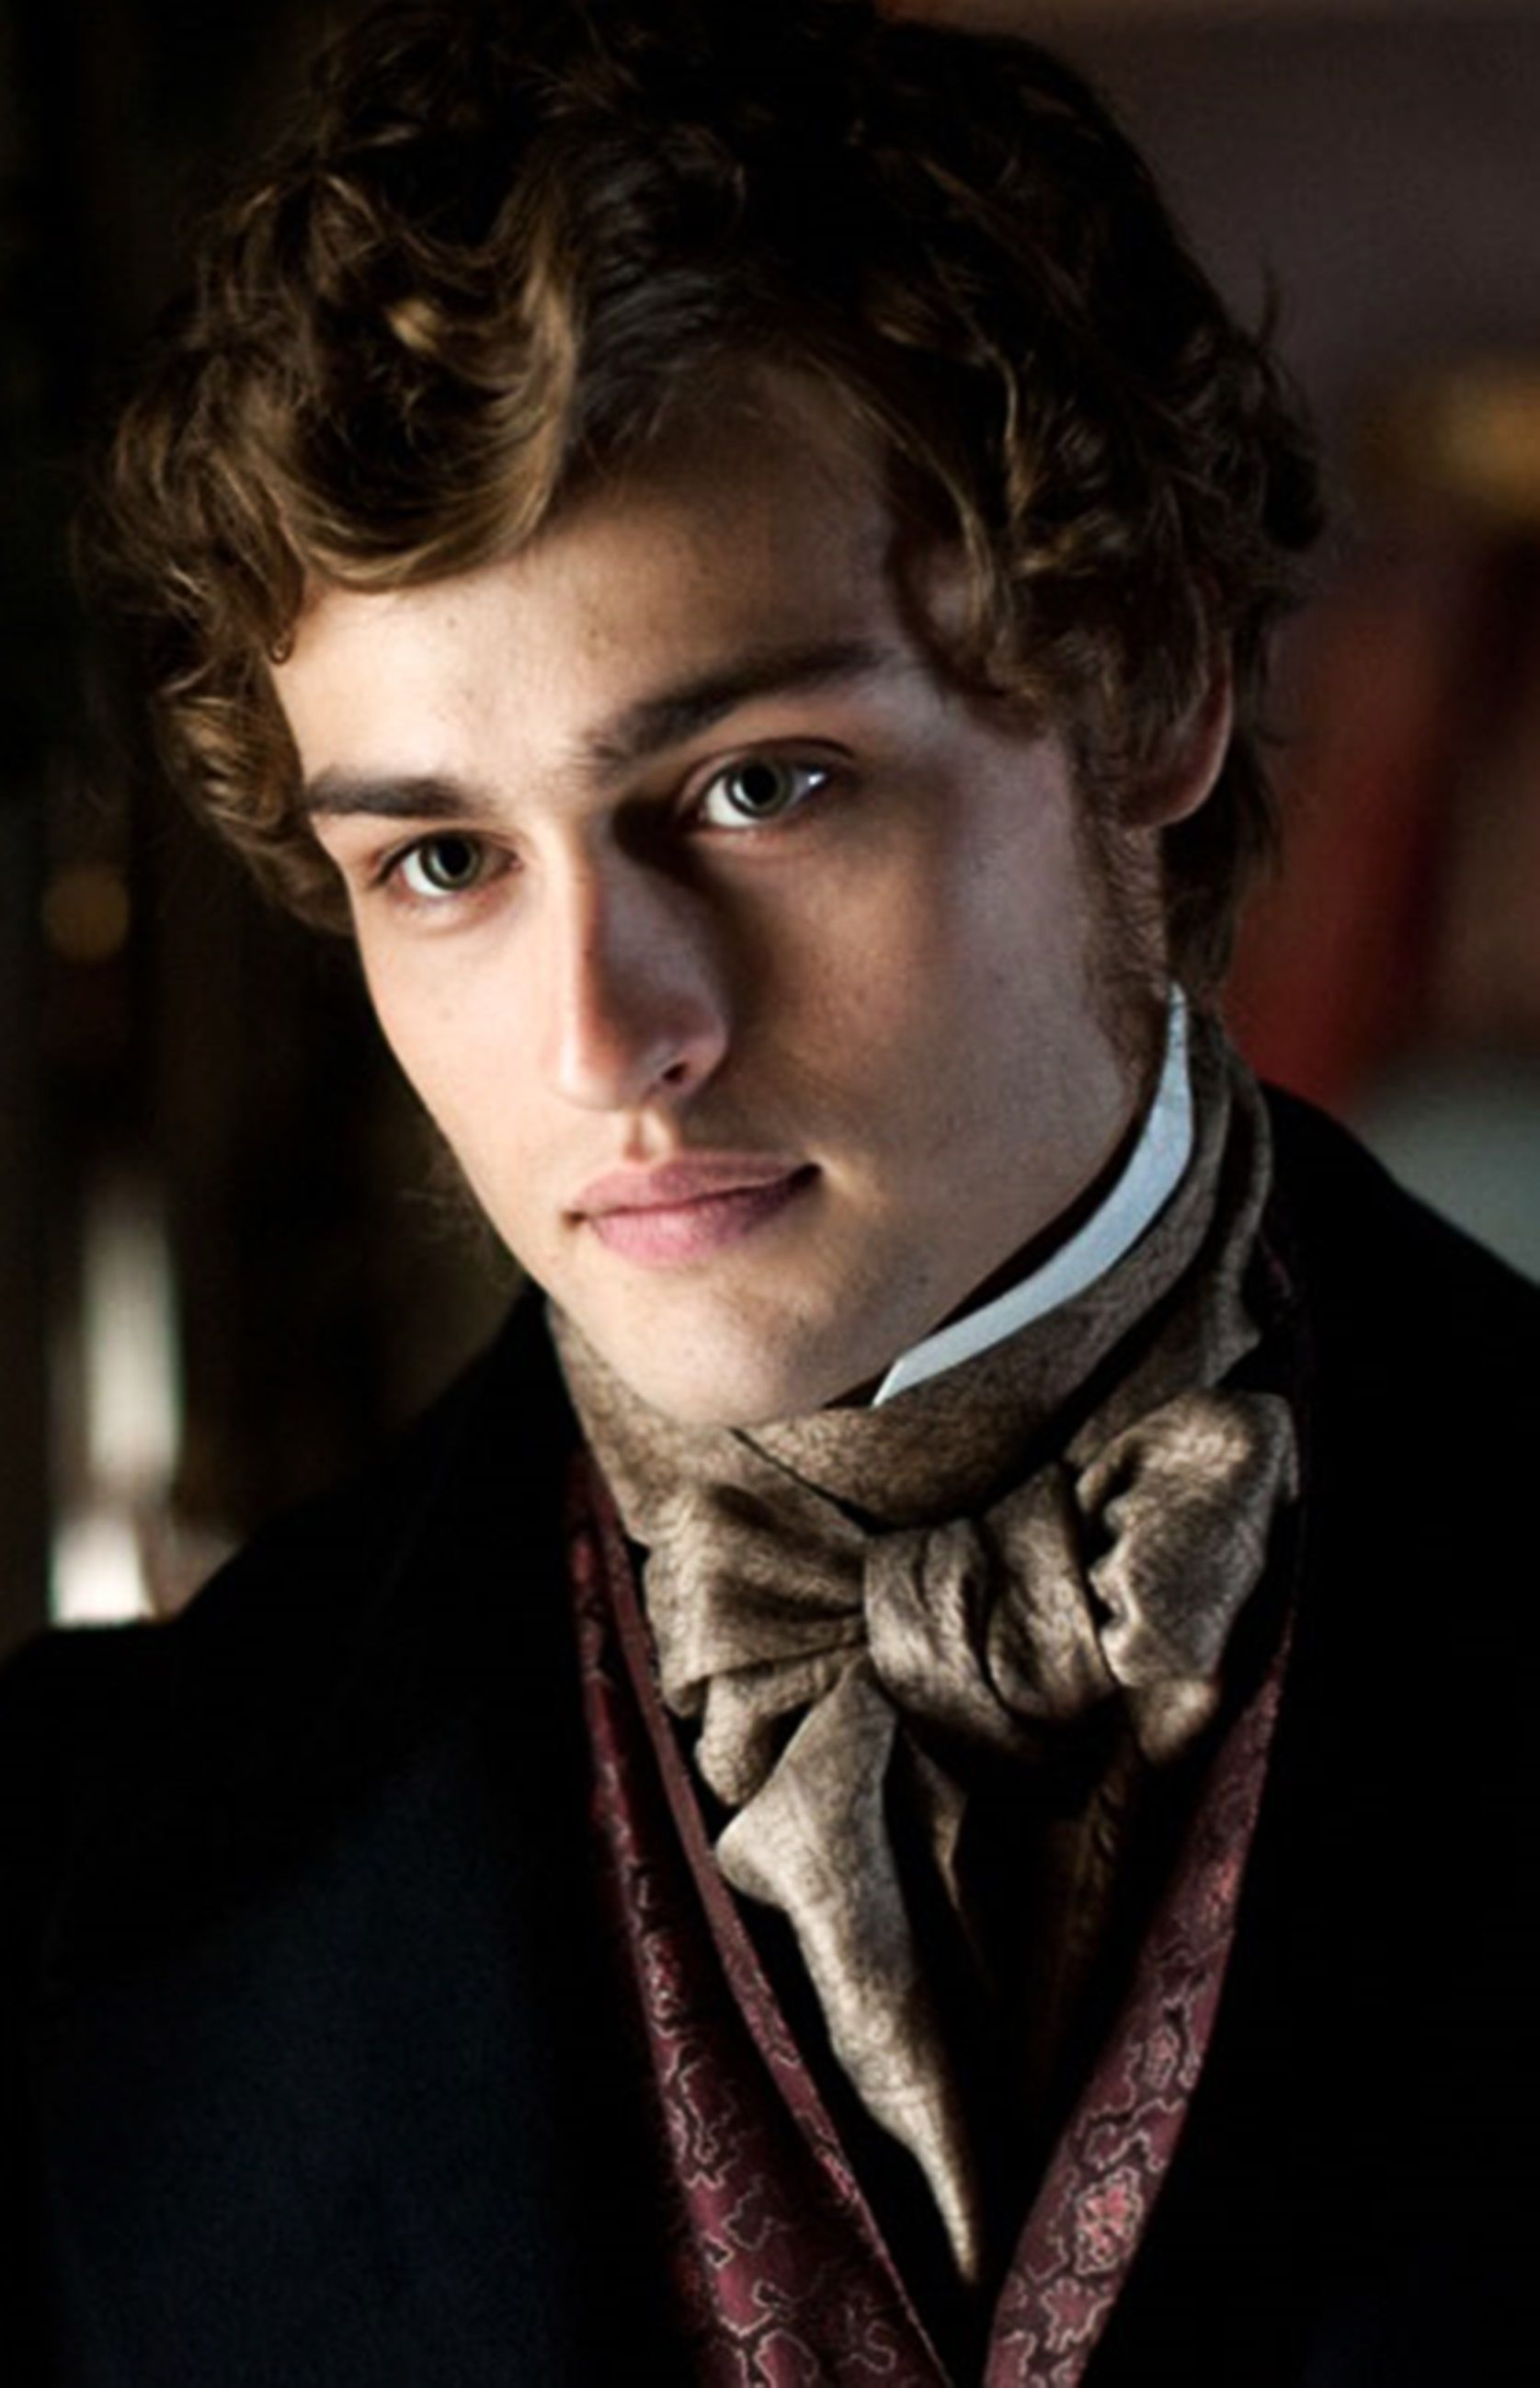 douglas booth portrays the character of pip in the movie great douglas booth portrays the character of pip in the movie great expectations